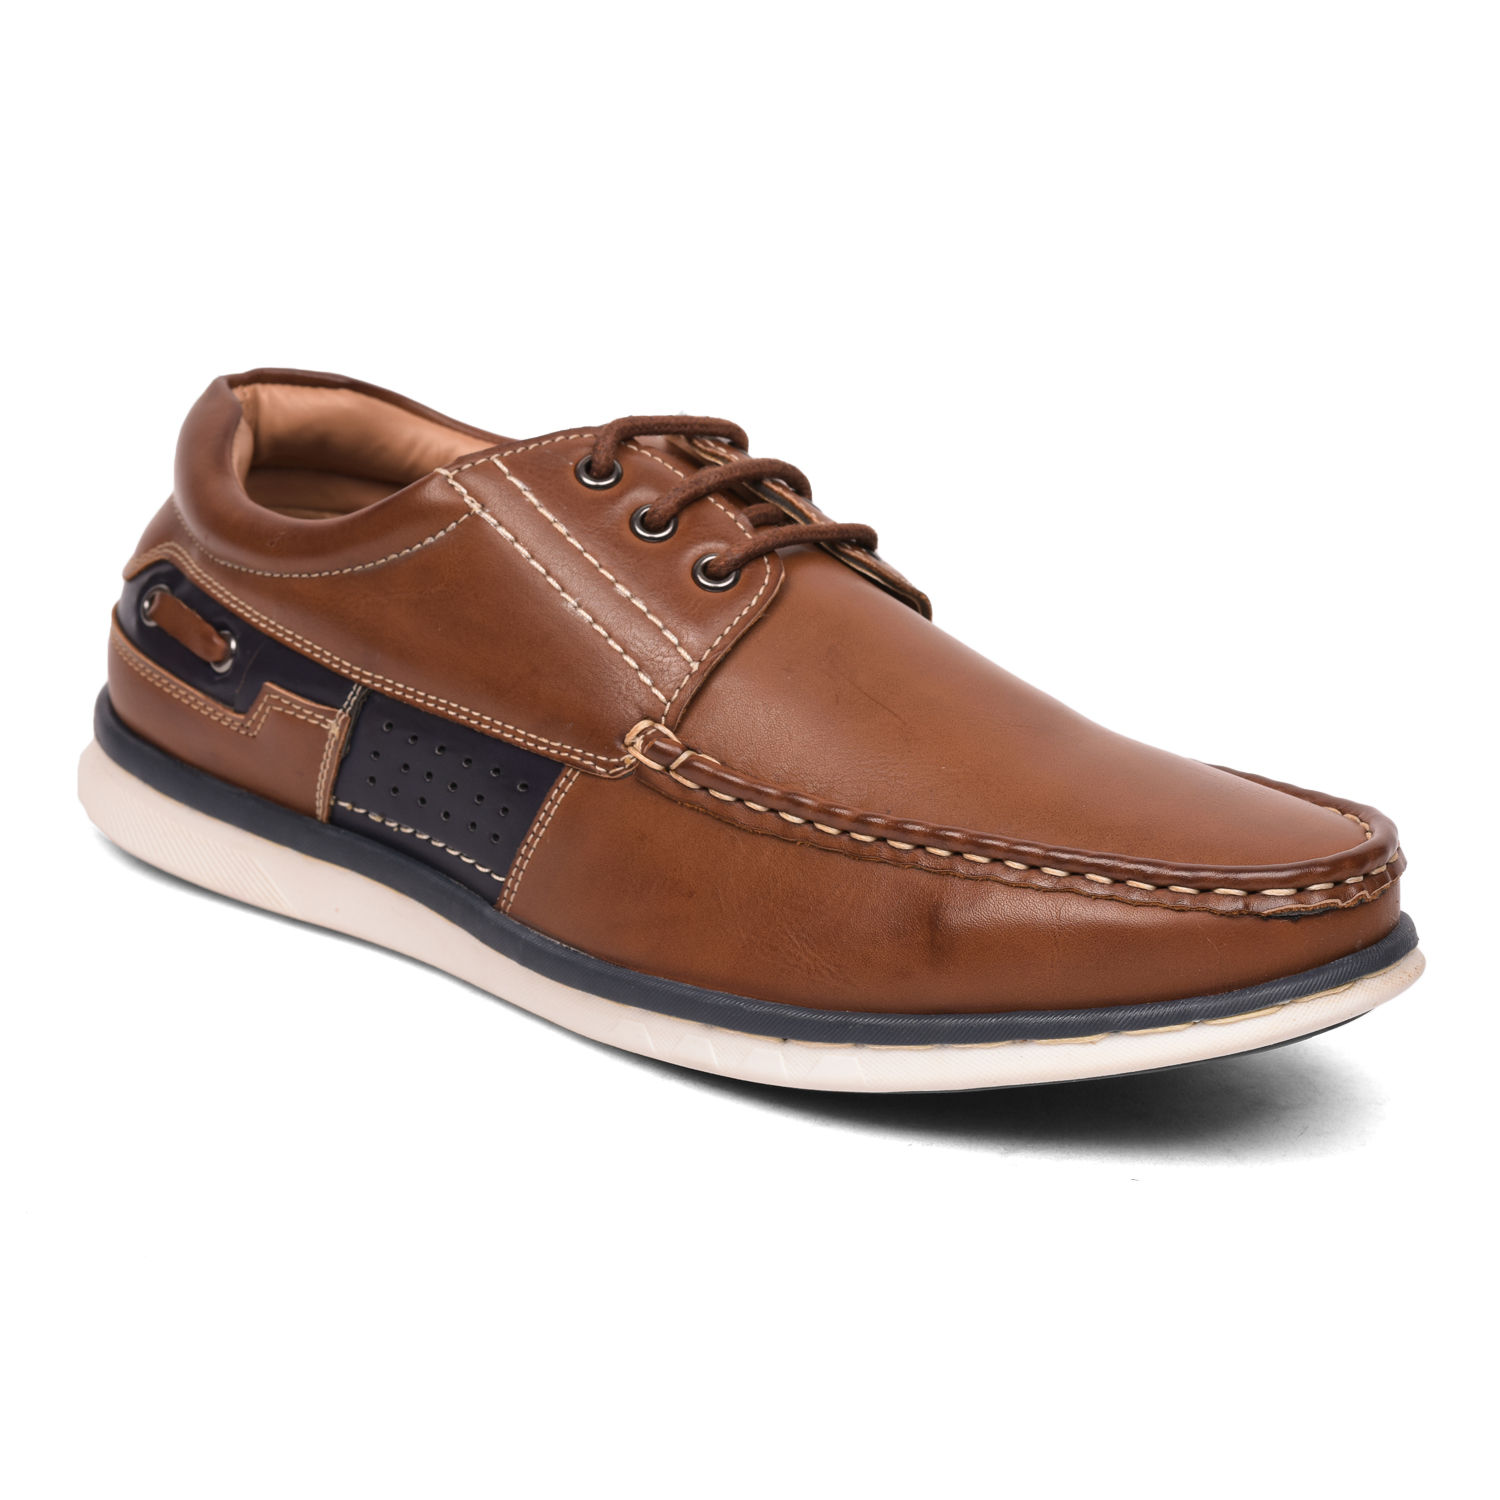 Liberty | Liberty Gliders Brown Casual Shoes VNTH-64 For - Men